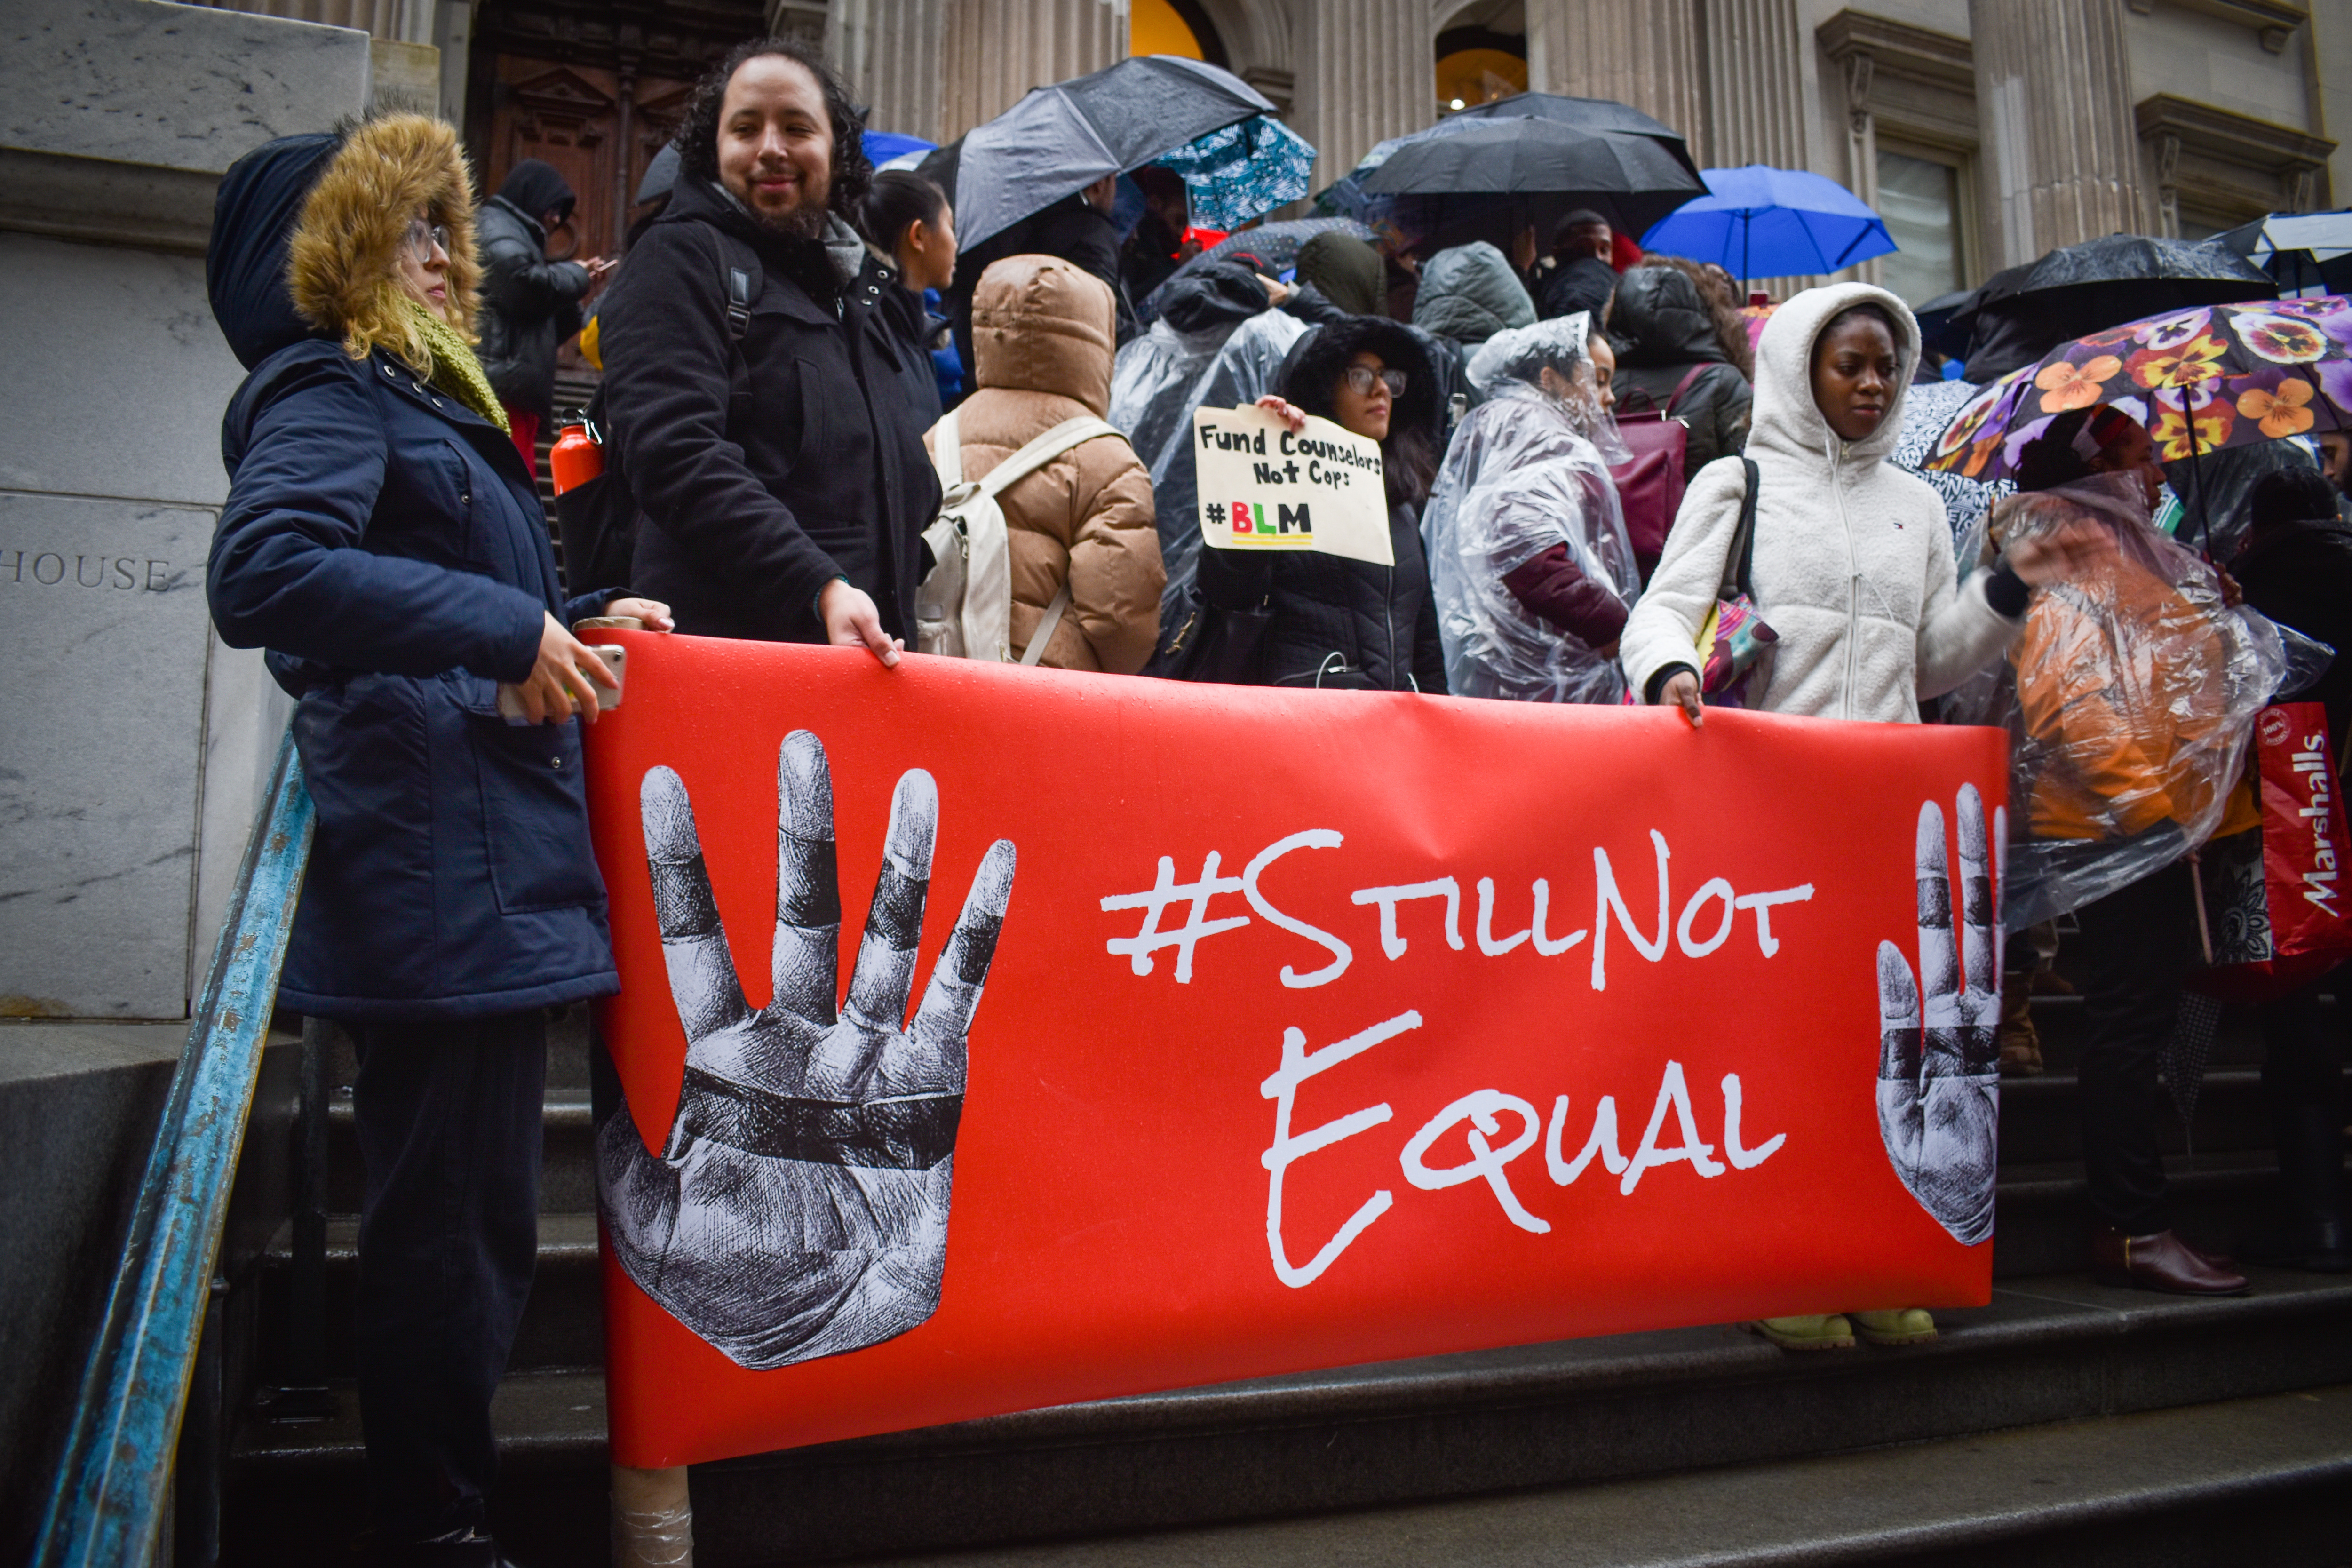 """A group of people hold a red sign that says """"Still Not Equal."""""""